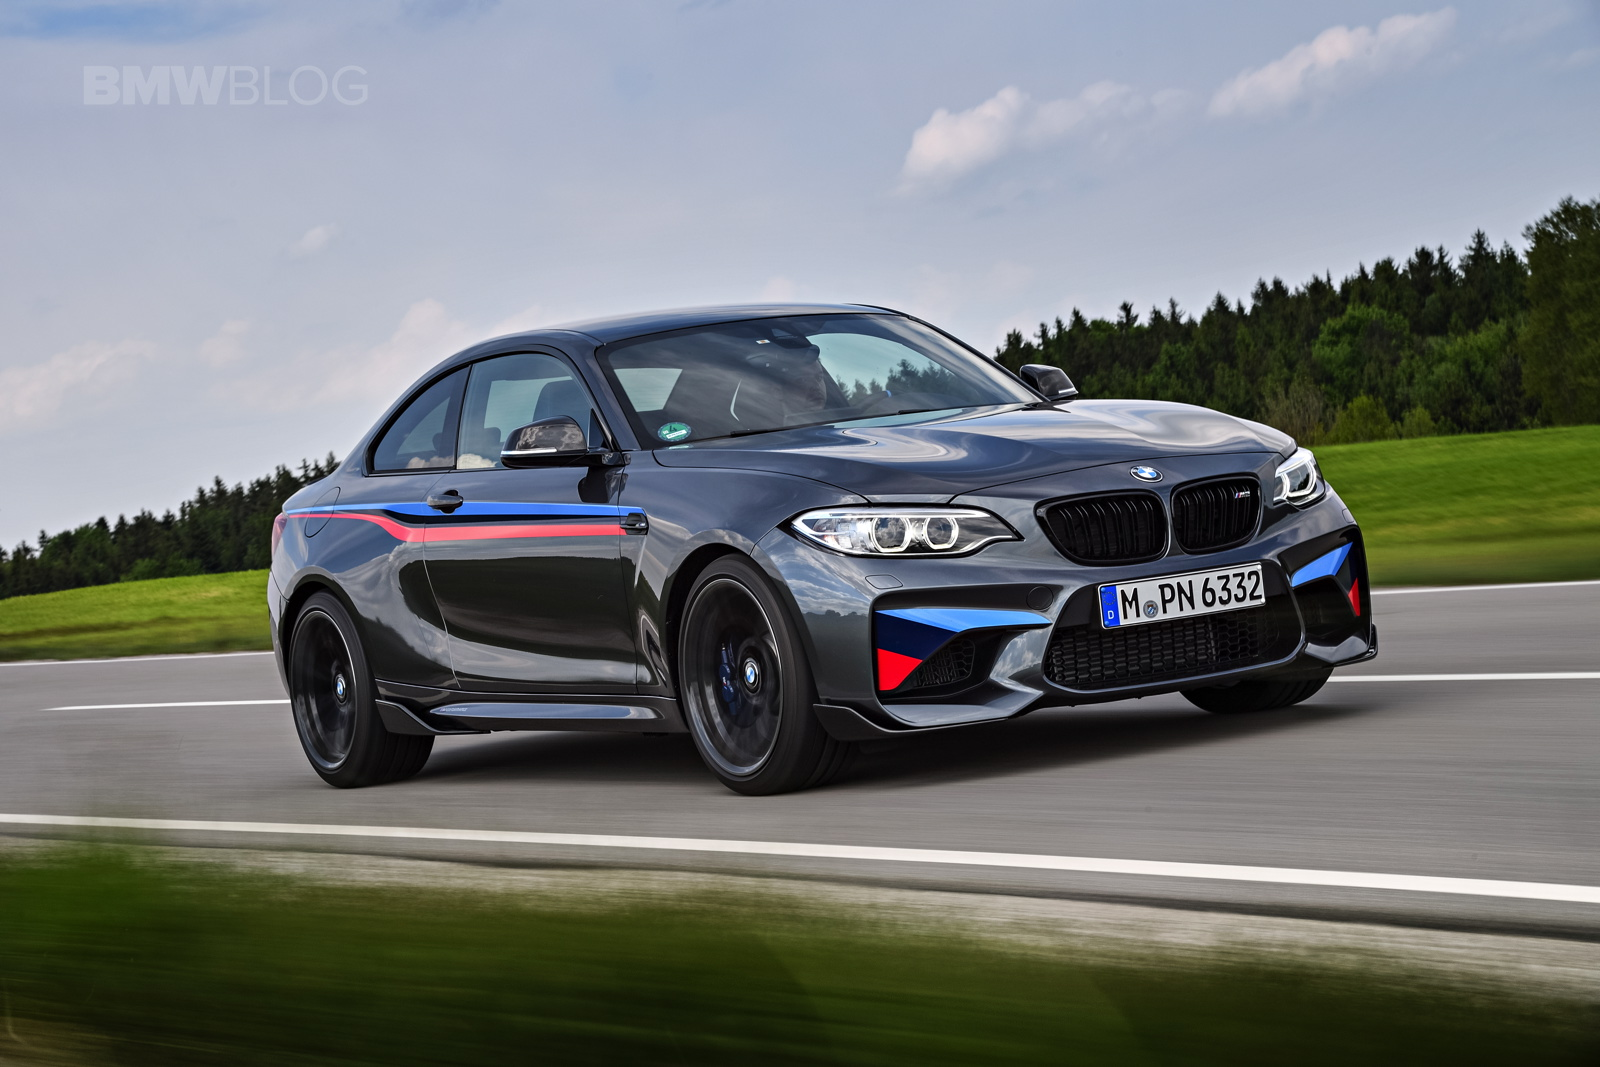 New photos of the BMW M2 with M Performance Parts